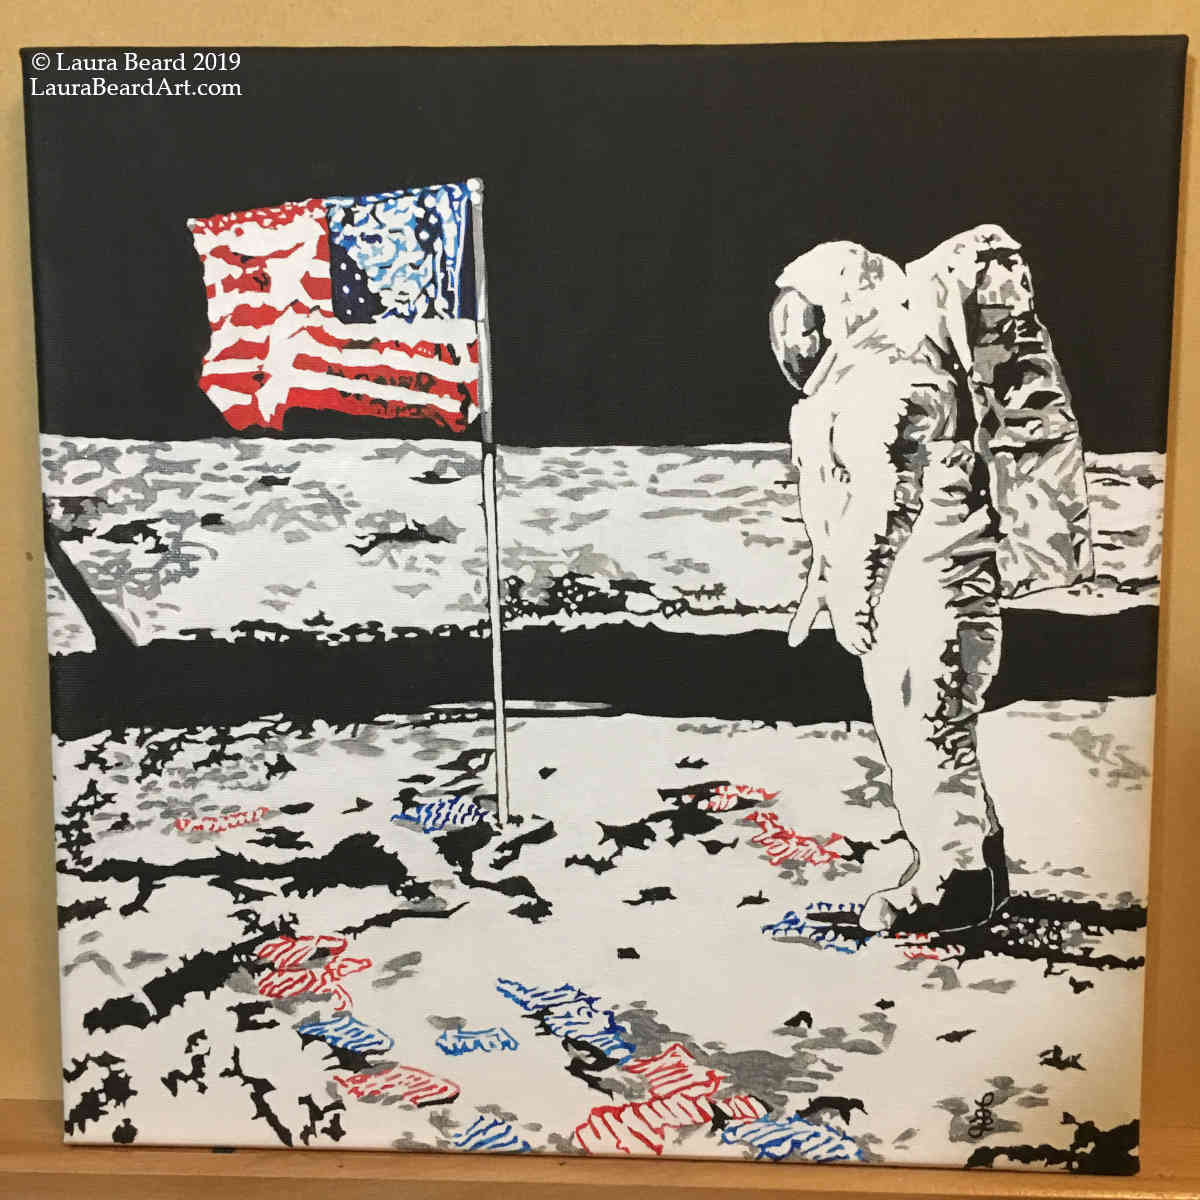 """Where There Is A Will""   ""Where There Is A Will"" is an 12""x12"" acrylic painting on canvas (unframed) depicts the Apollo 11 landing and moonwalk on July 20, 1969. The footprints are depicted in the colors of the flag as this piece was created on the 50th anniversary and depicts the power of collective resolve to create solutions for change. This same spirit, I believe, can lead us forward through the challenges of climate change, pollution, and refuge crises.    This painting is available for immediate purchase."